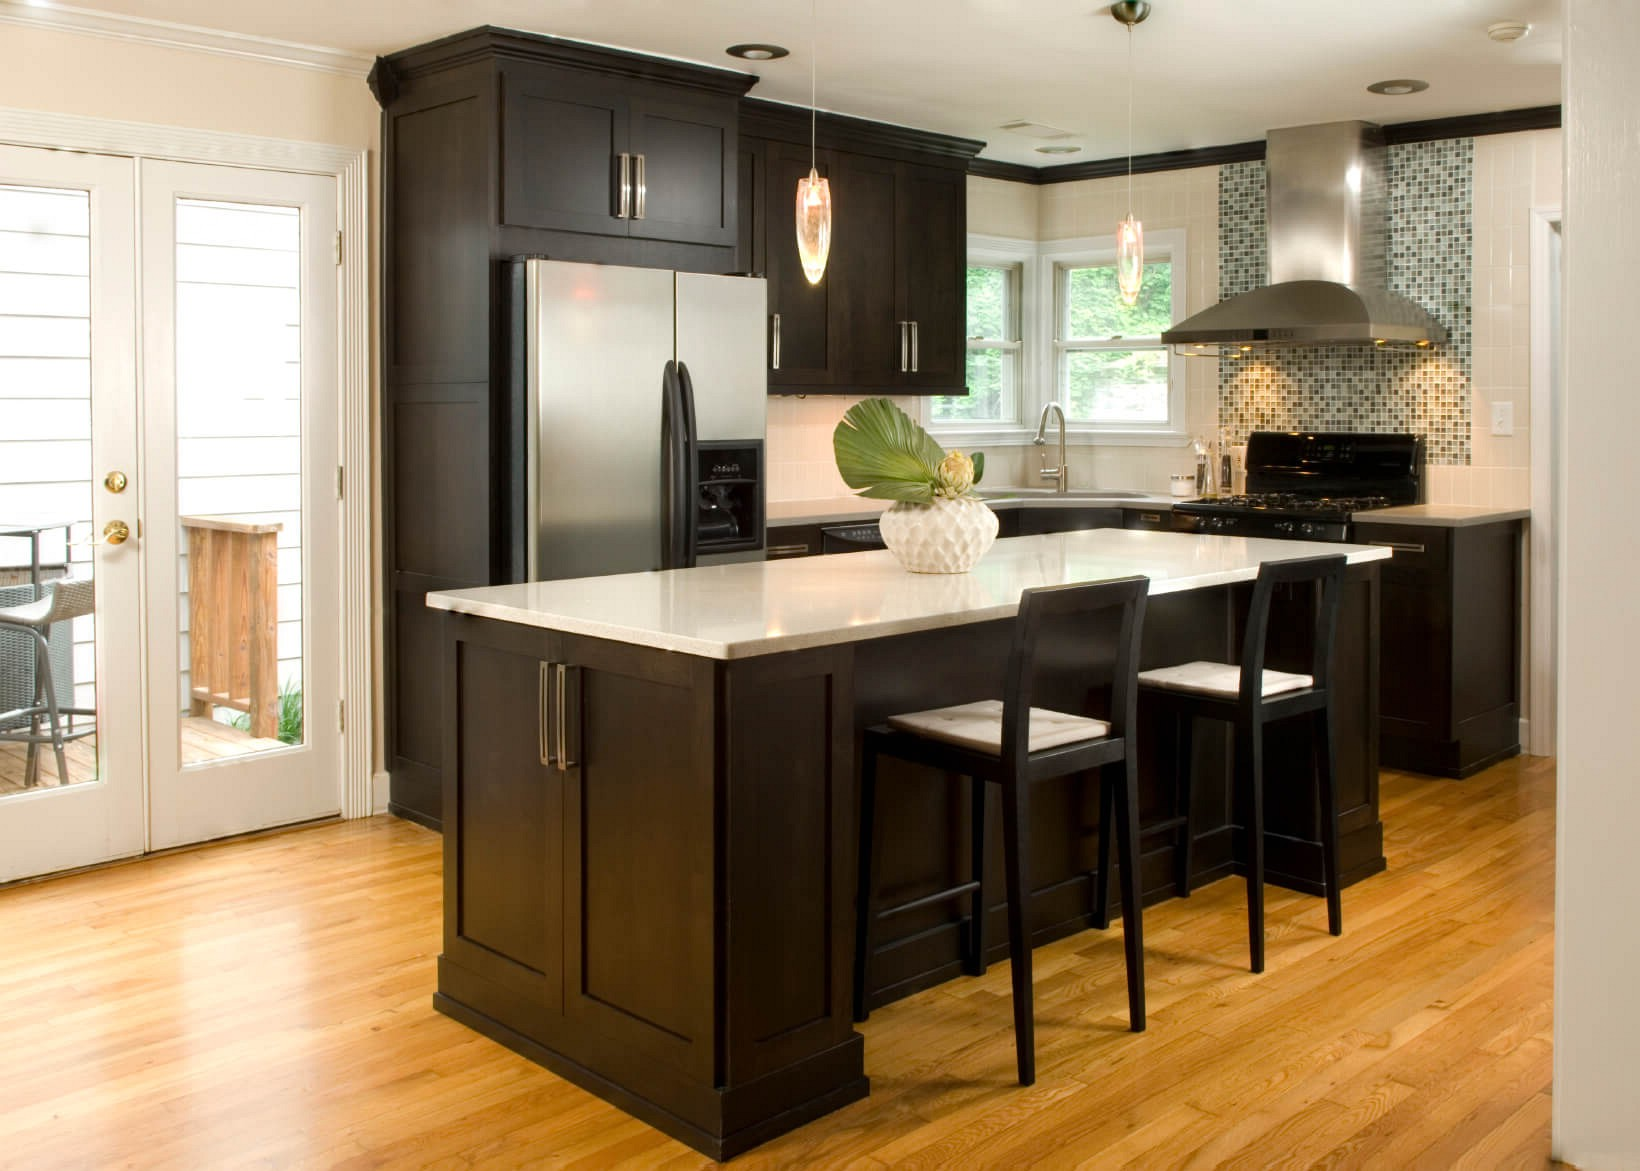 Kitchen design tips for dark kitchen cabinets for Black kitchen cabinets with dark floors